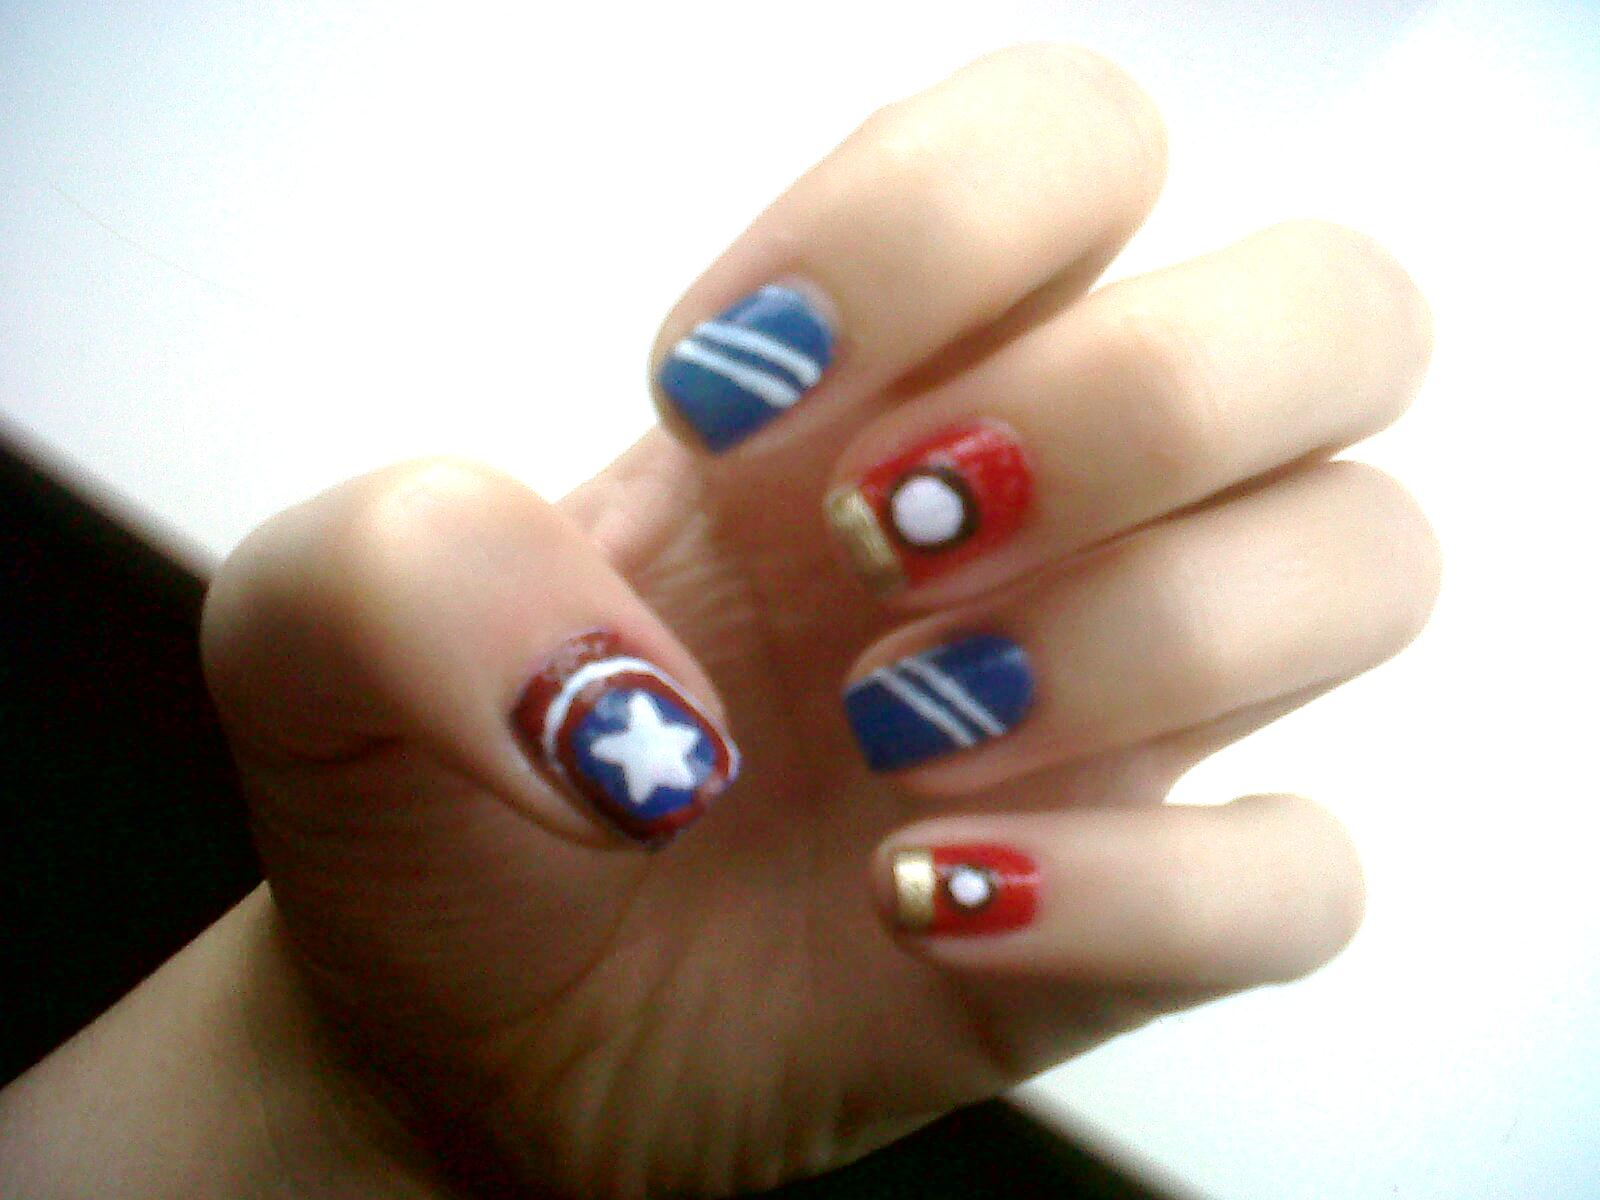 Plucky Kelly: Avengers Assemble Nail Art and Design